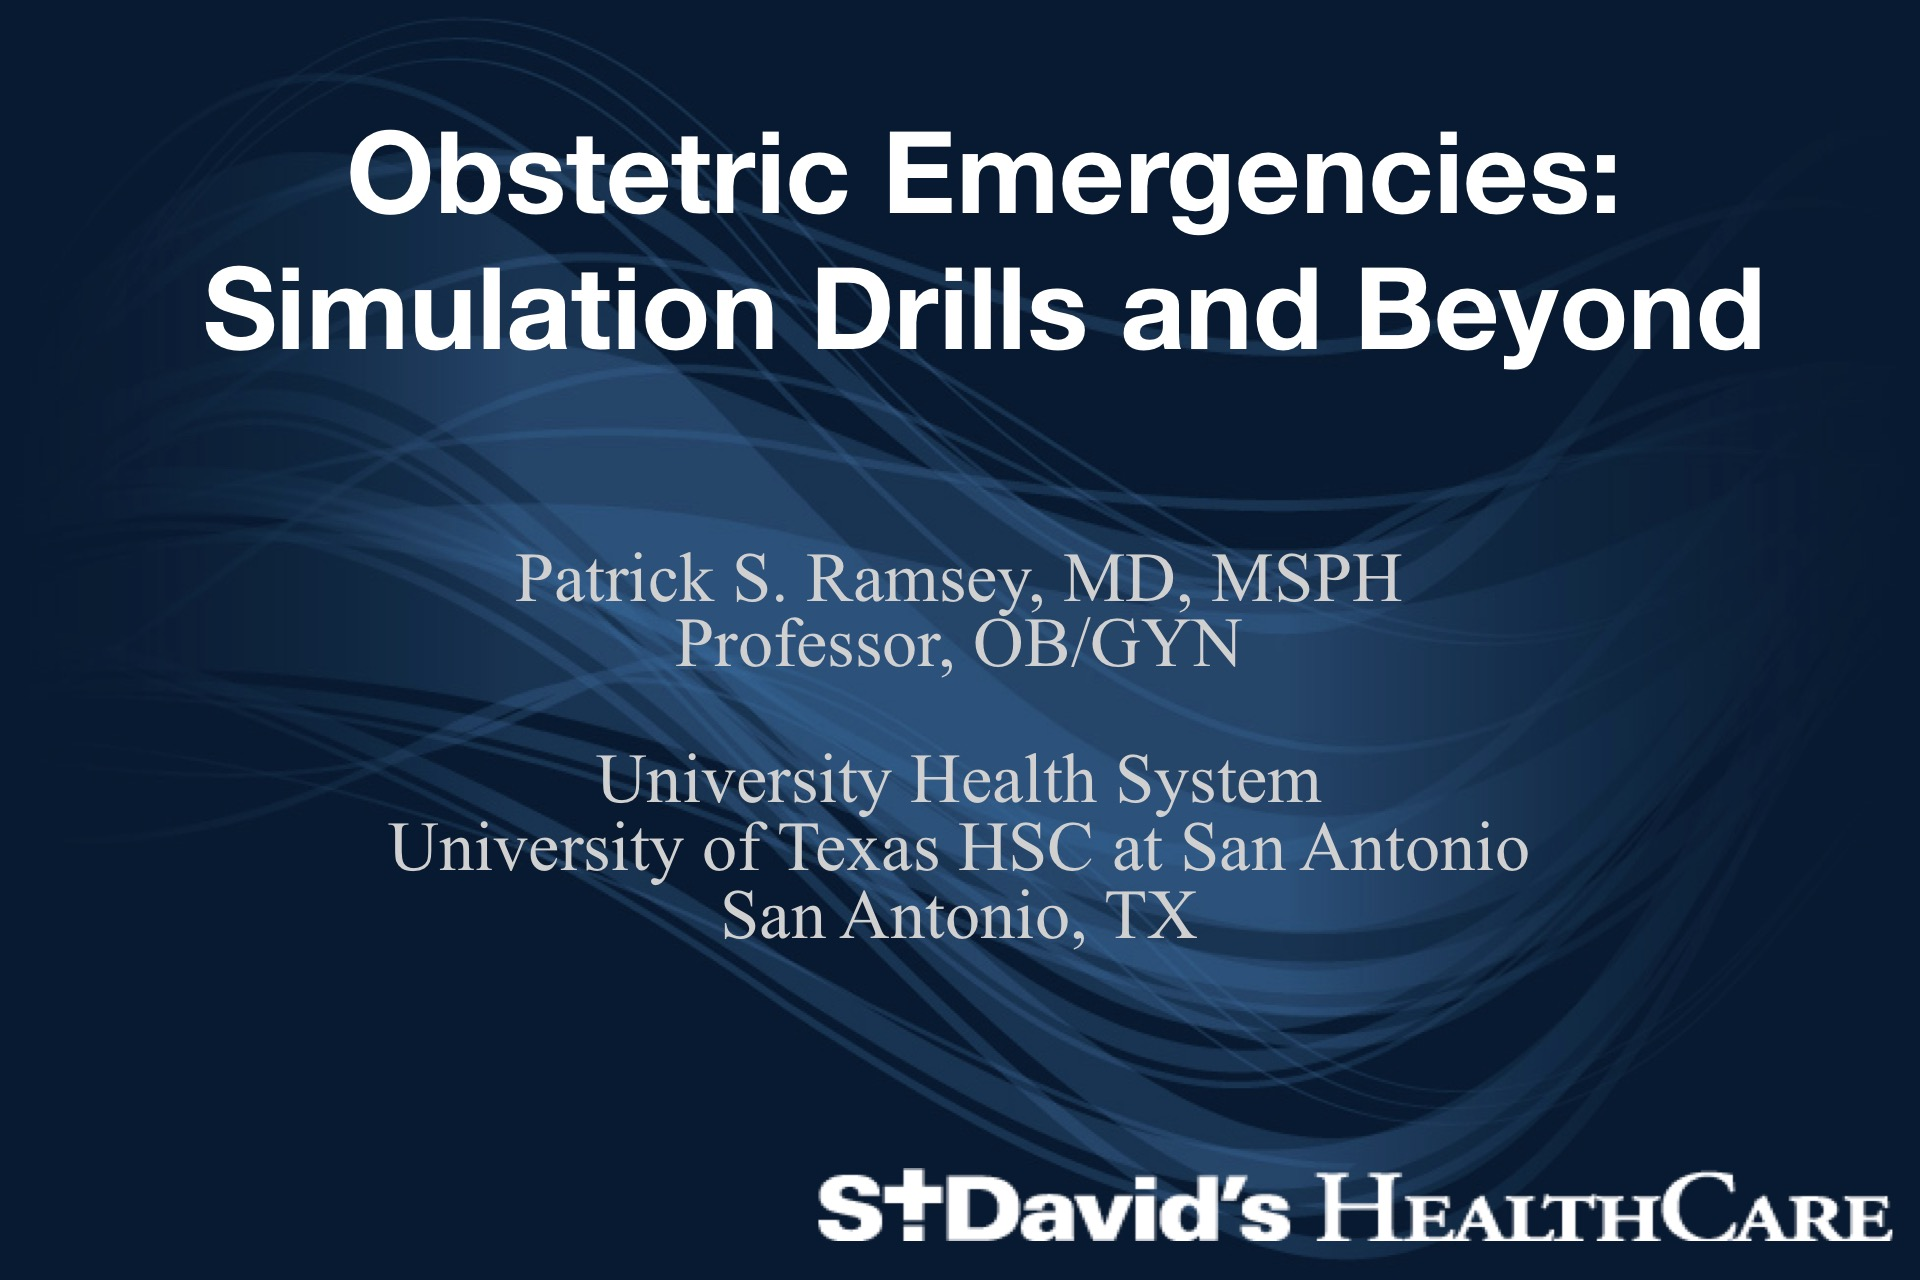 Obstetric Emergencies: Simulation Drills and Beyond